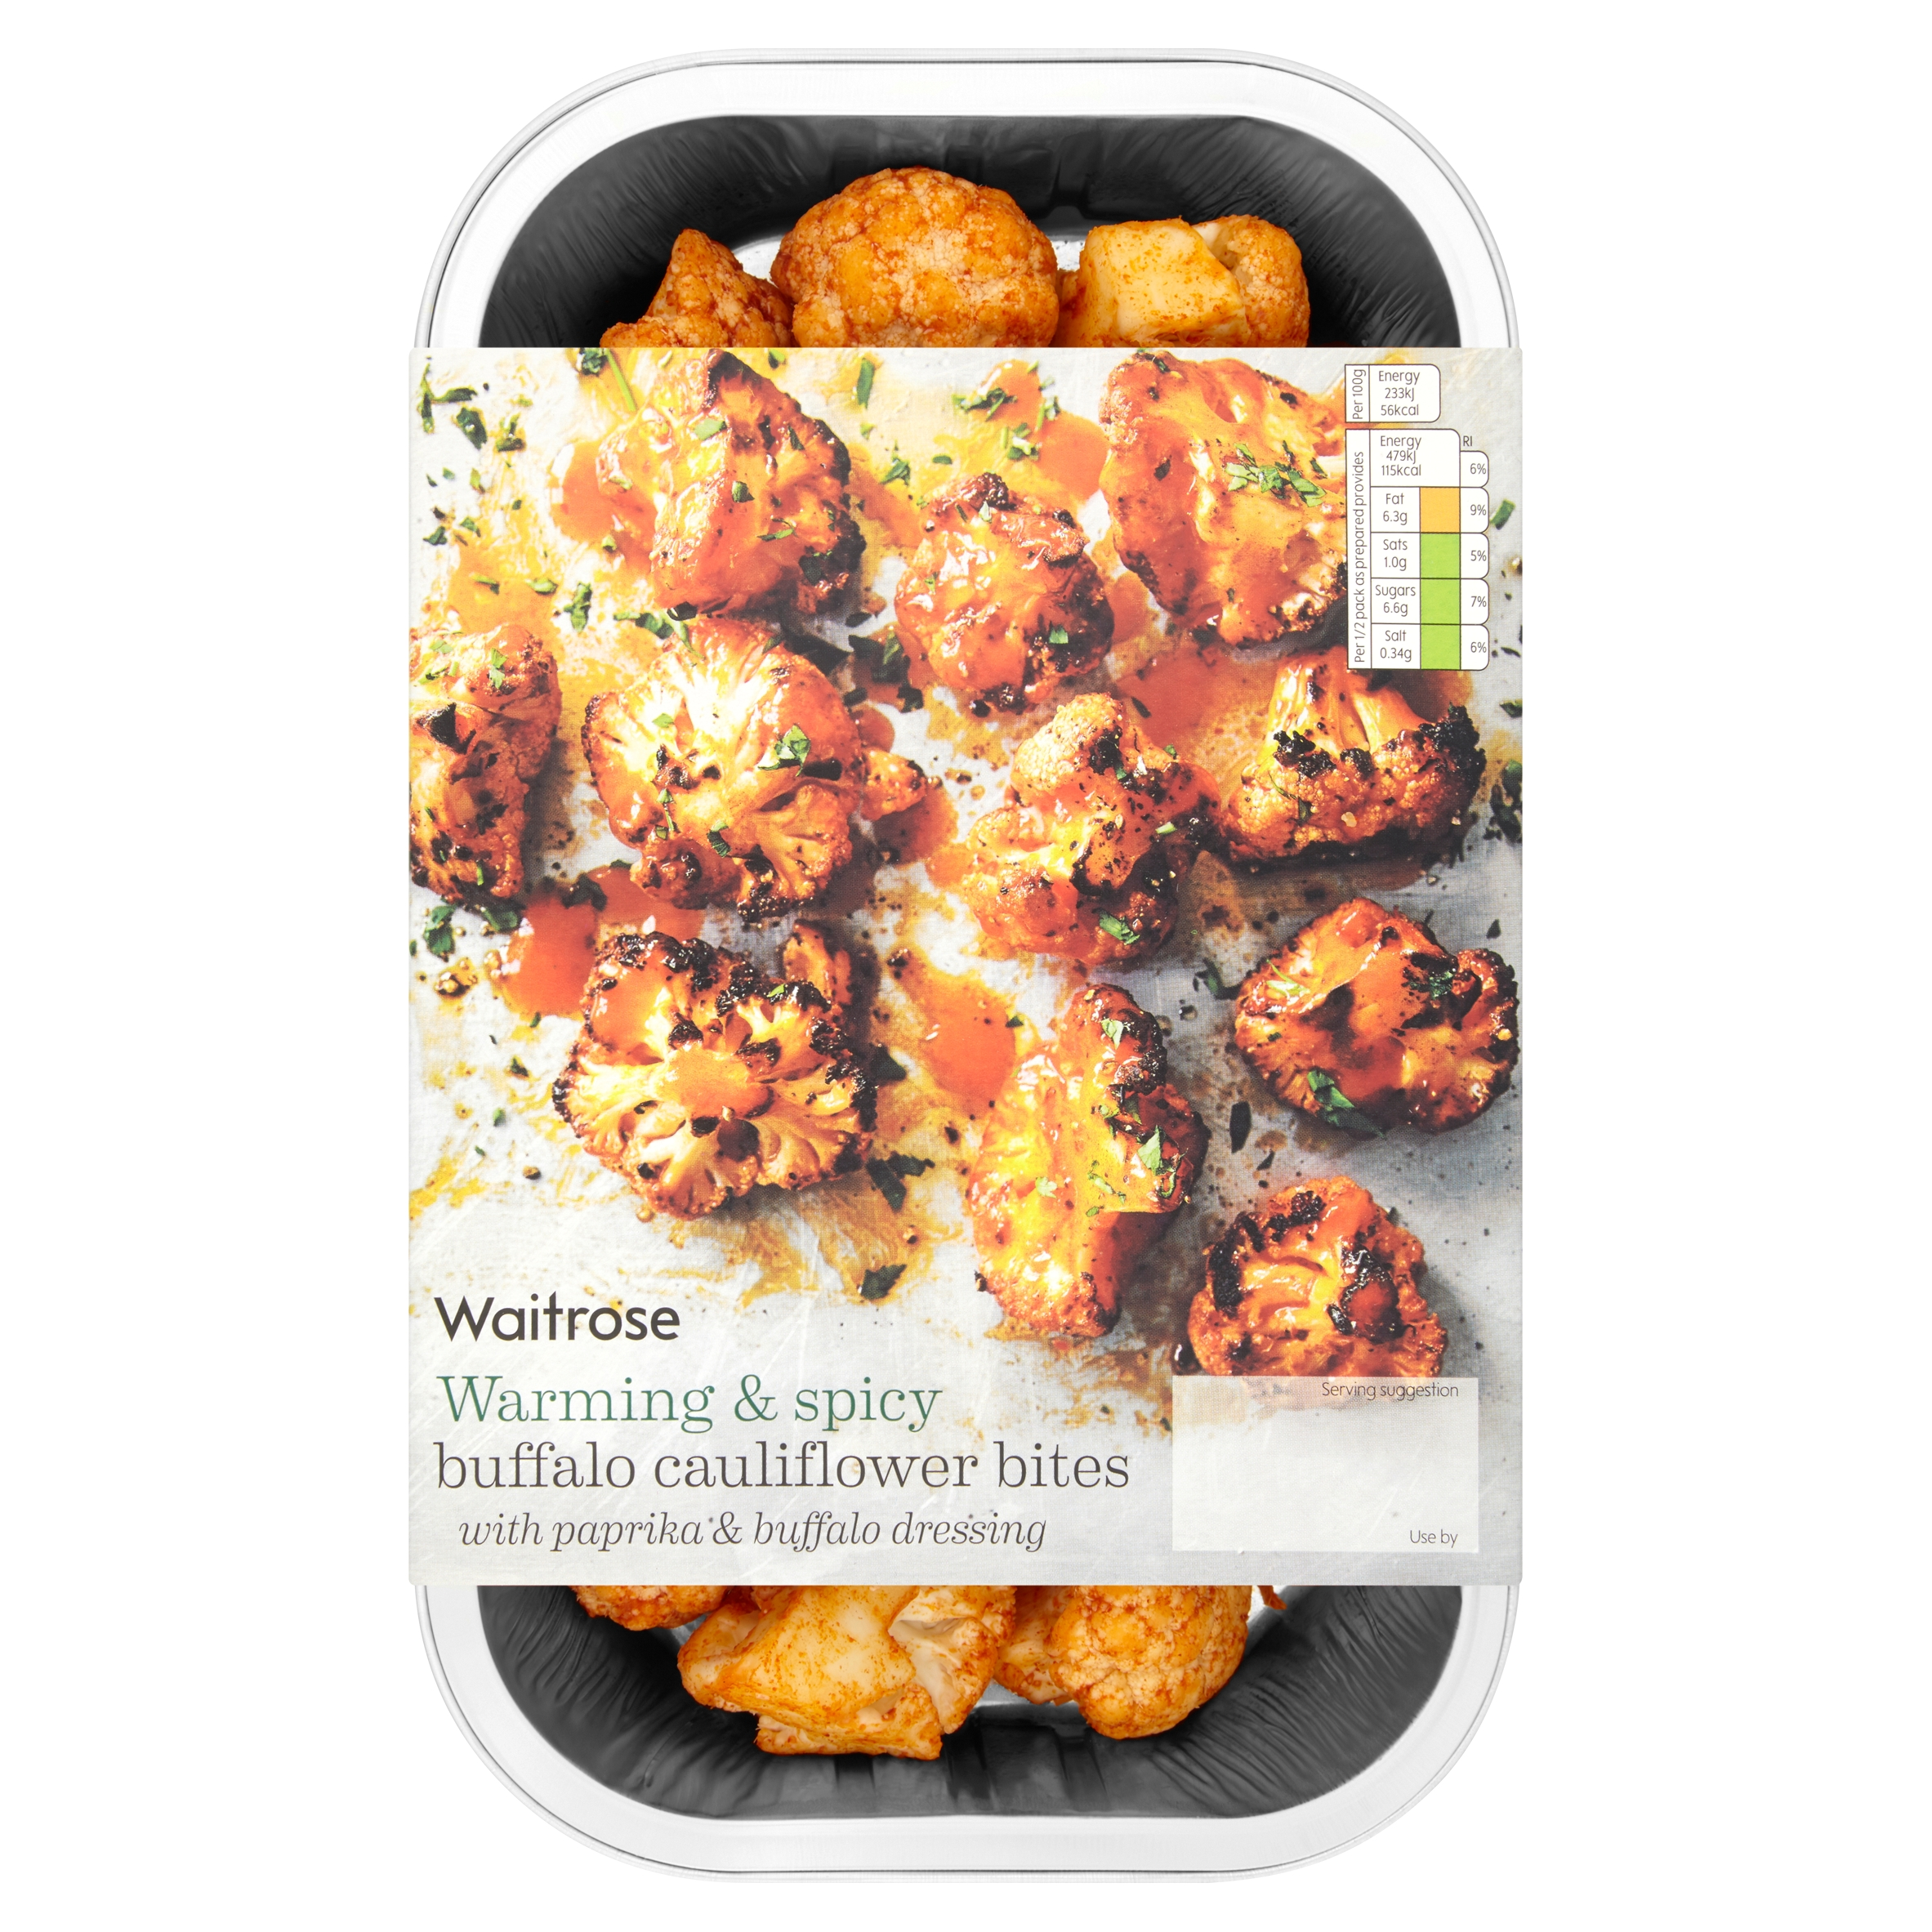 Cauliflower Bites for the BBQ, from Waitrose